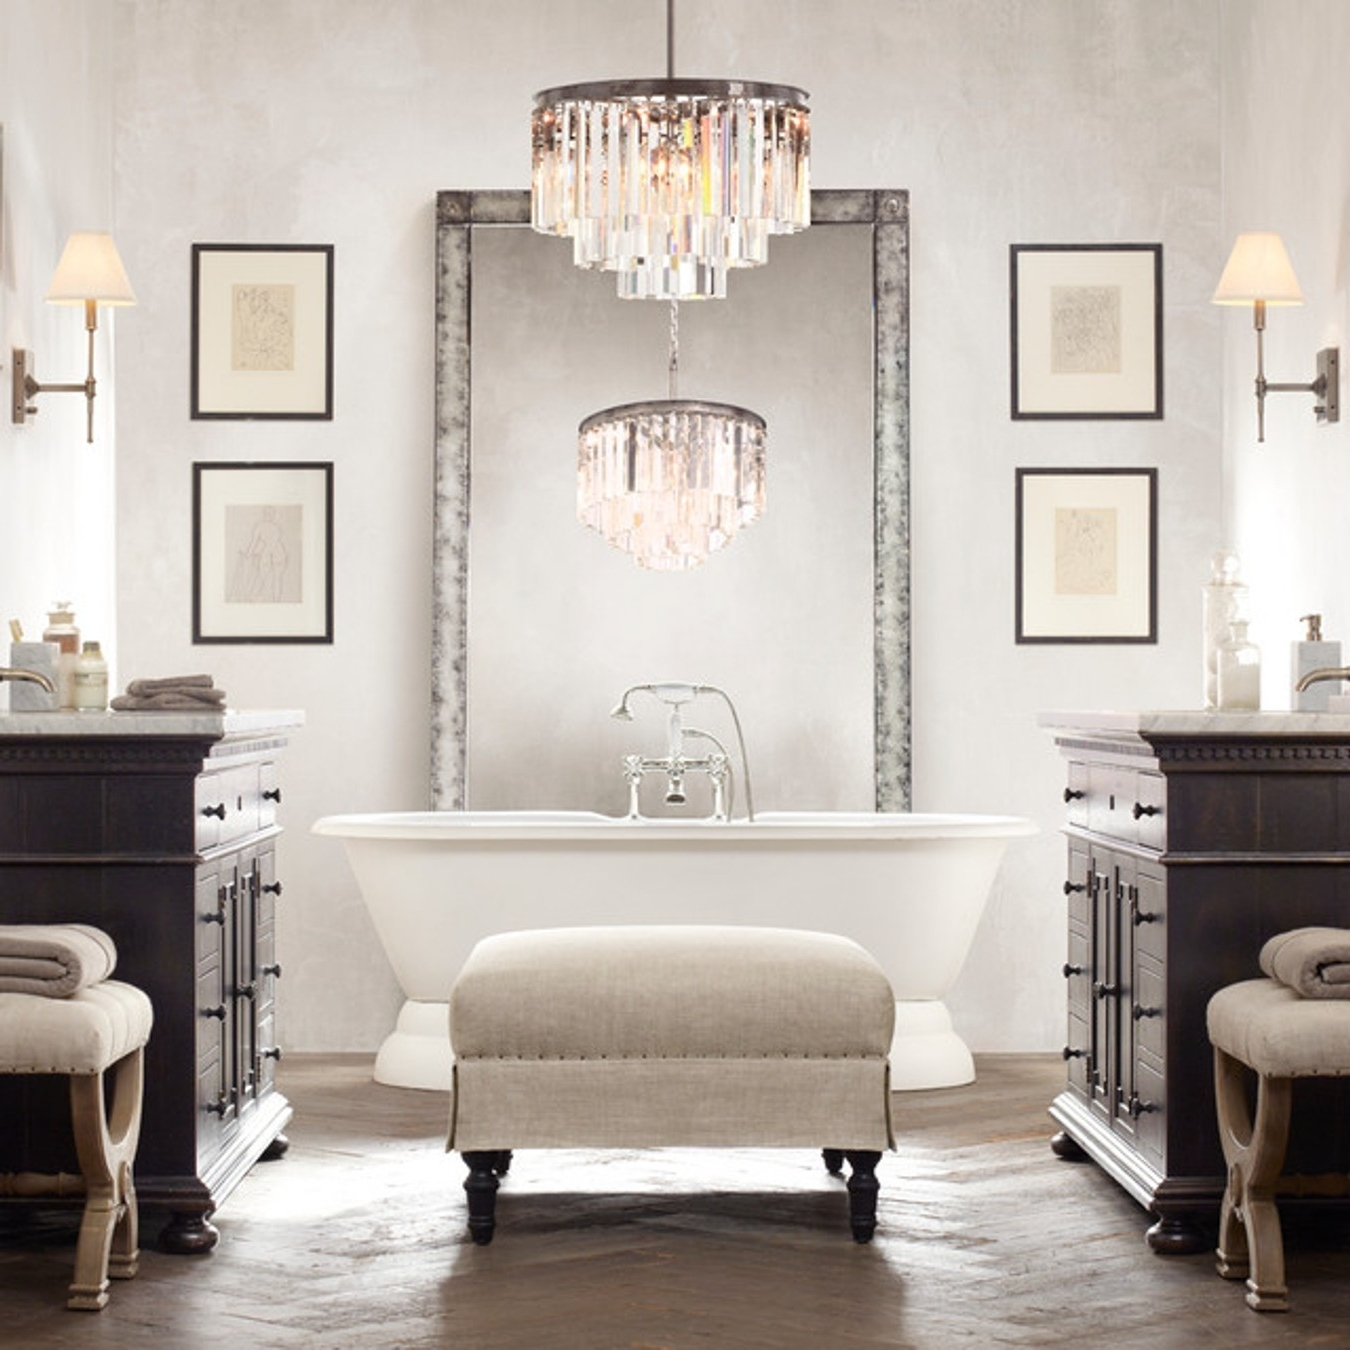 Bedroom & Bathroom: Breathtaking Bathroom Chandeliers For Throughout Preferred Bathroom Chandelier Lighting (View 9 of 20)